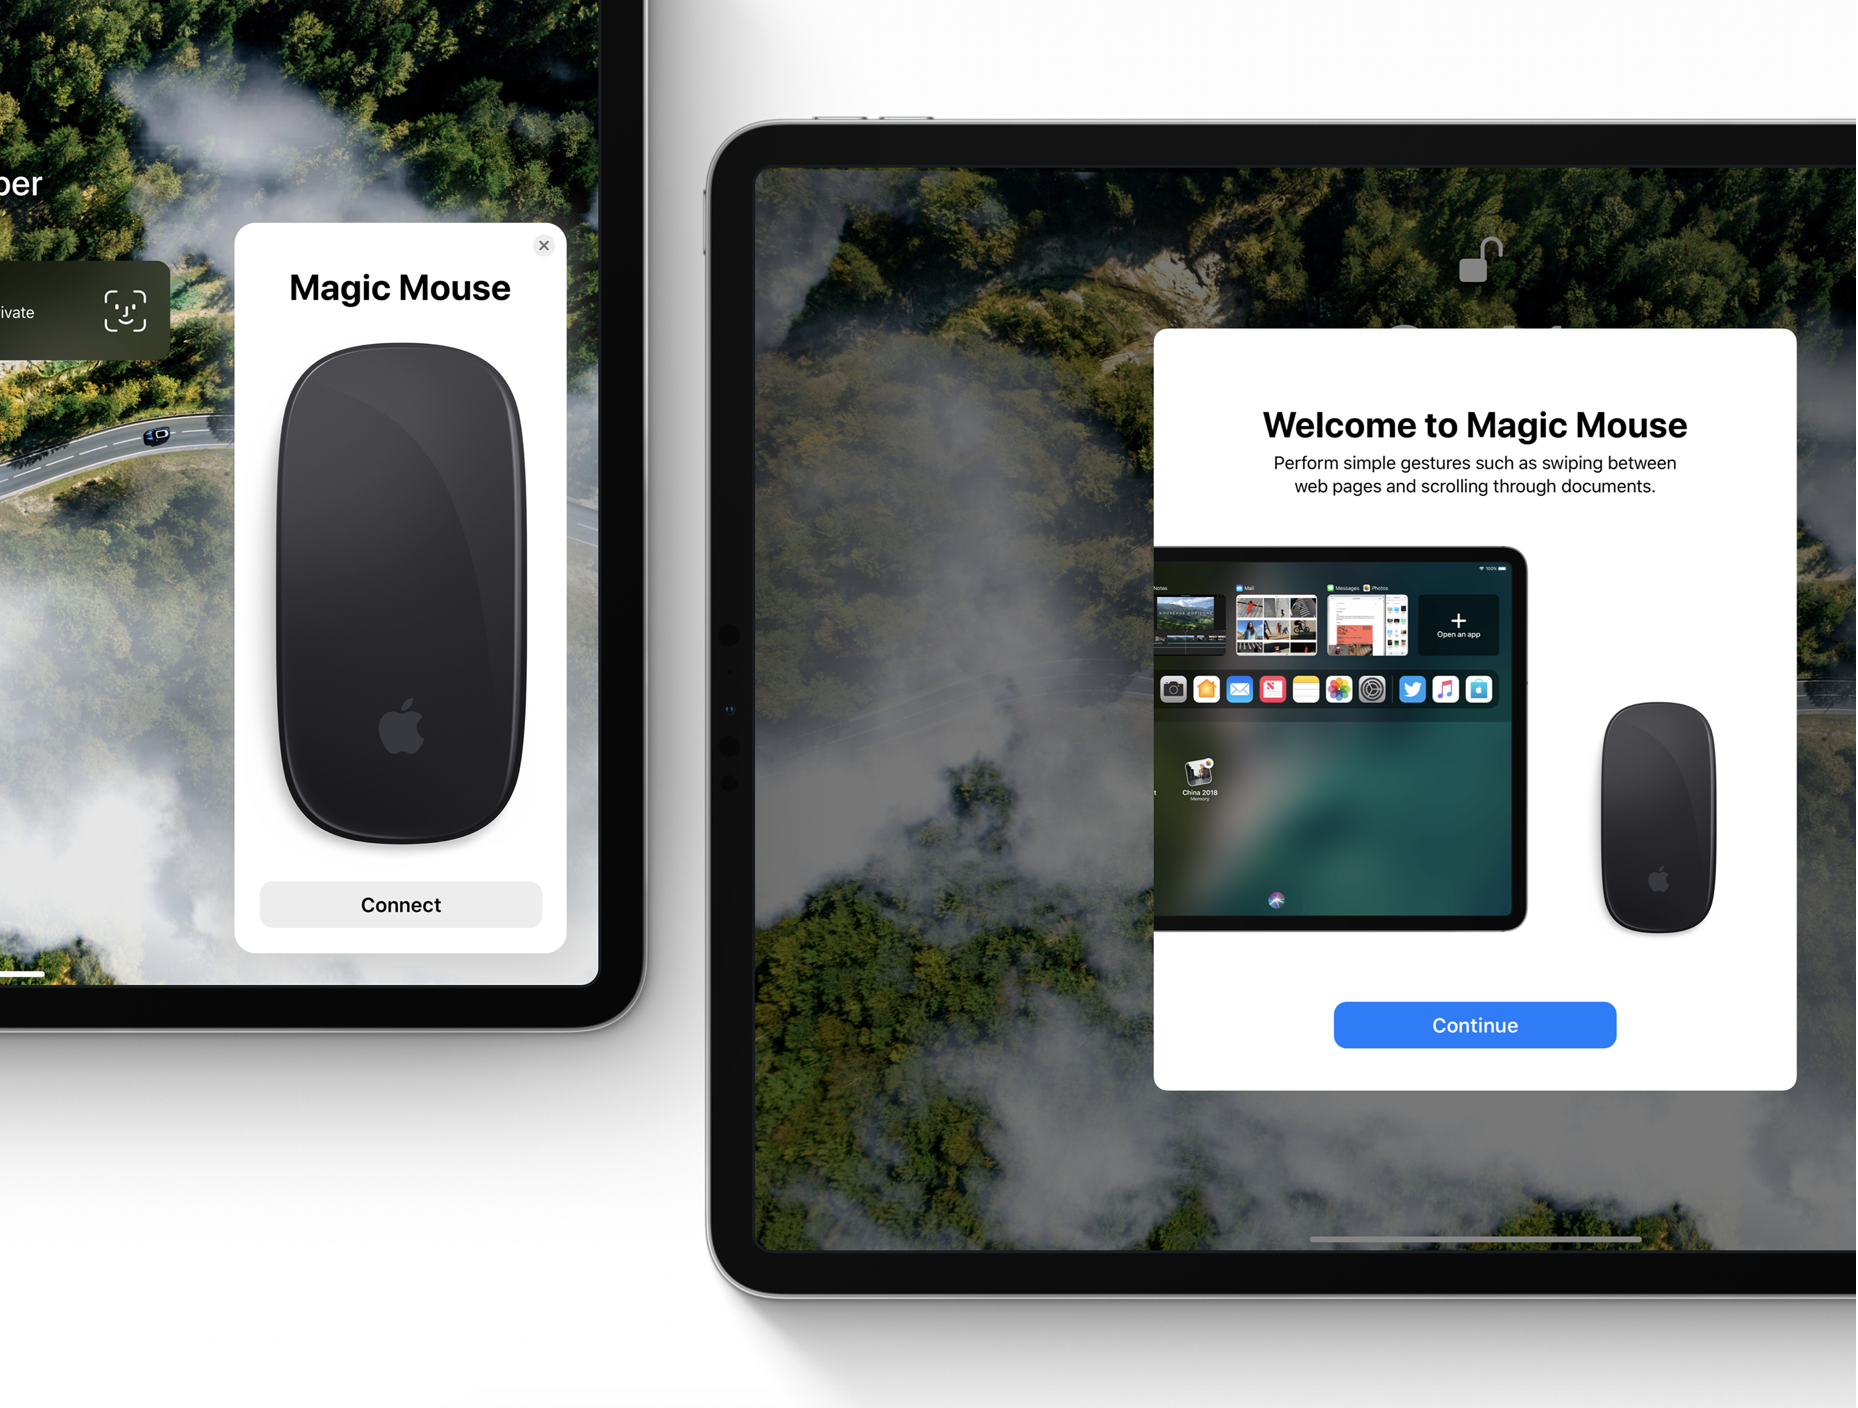 iOS 13 concept Magic Mouse support